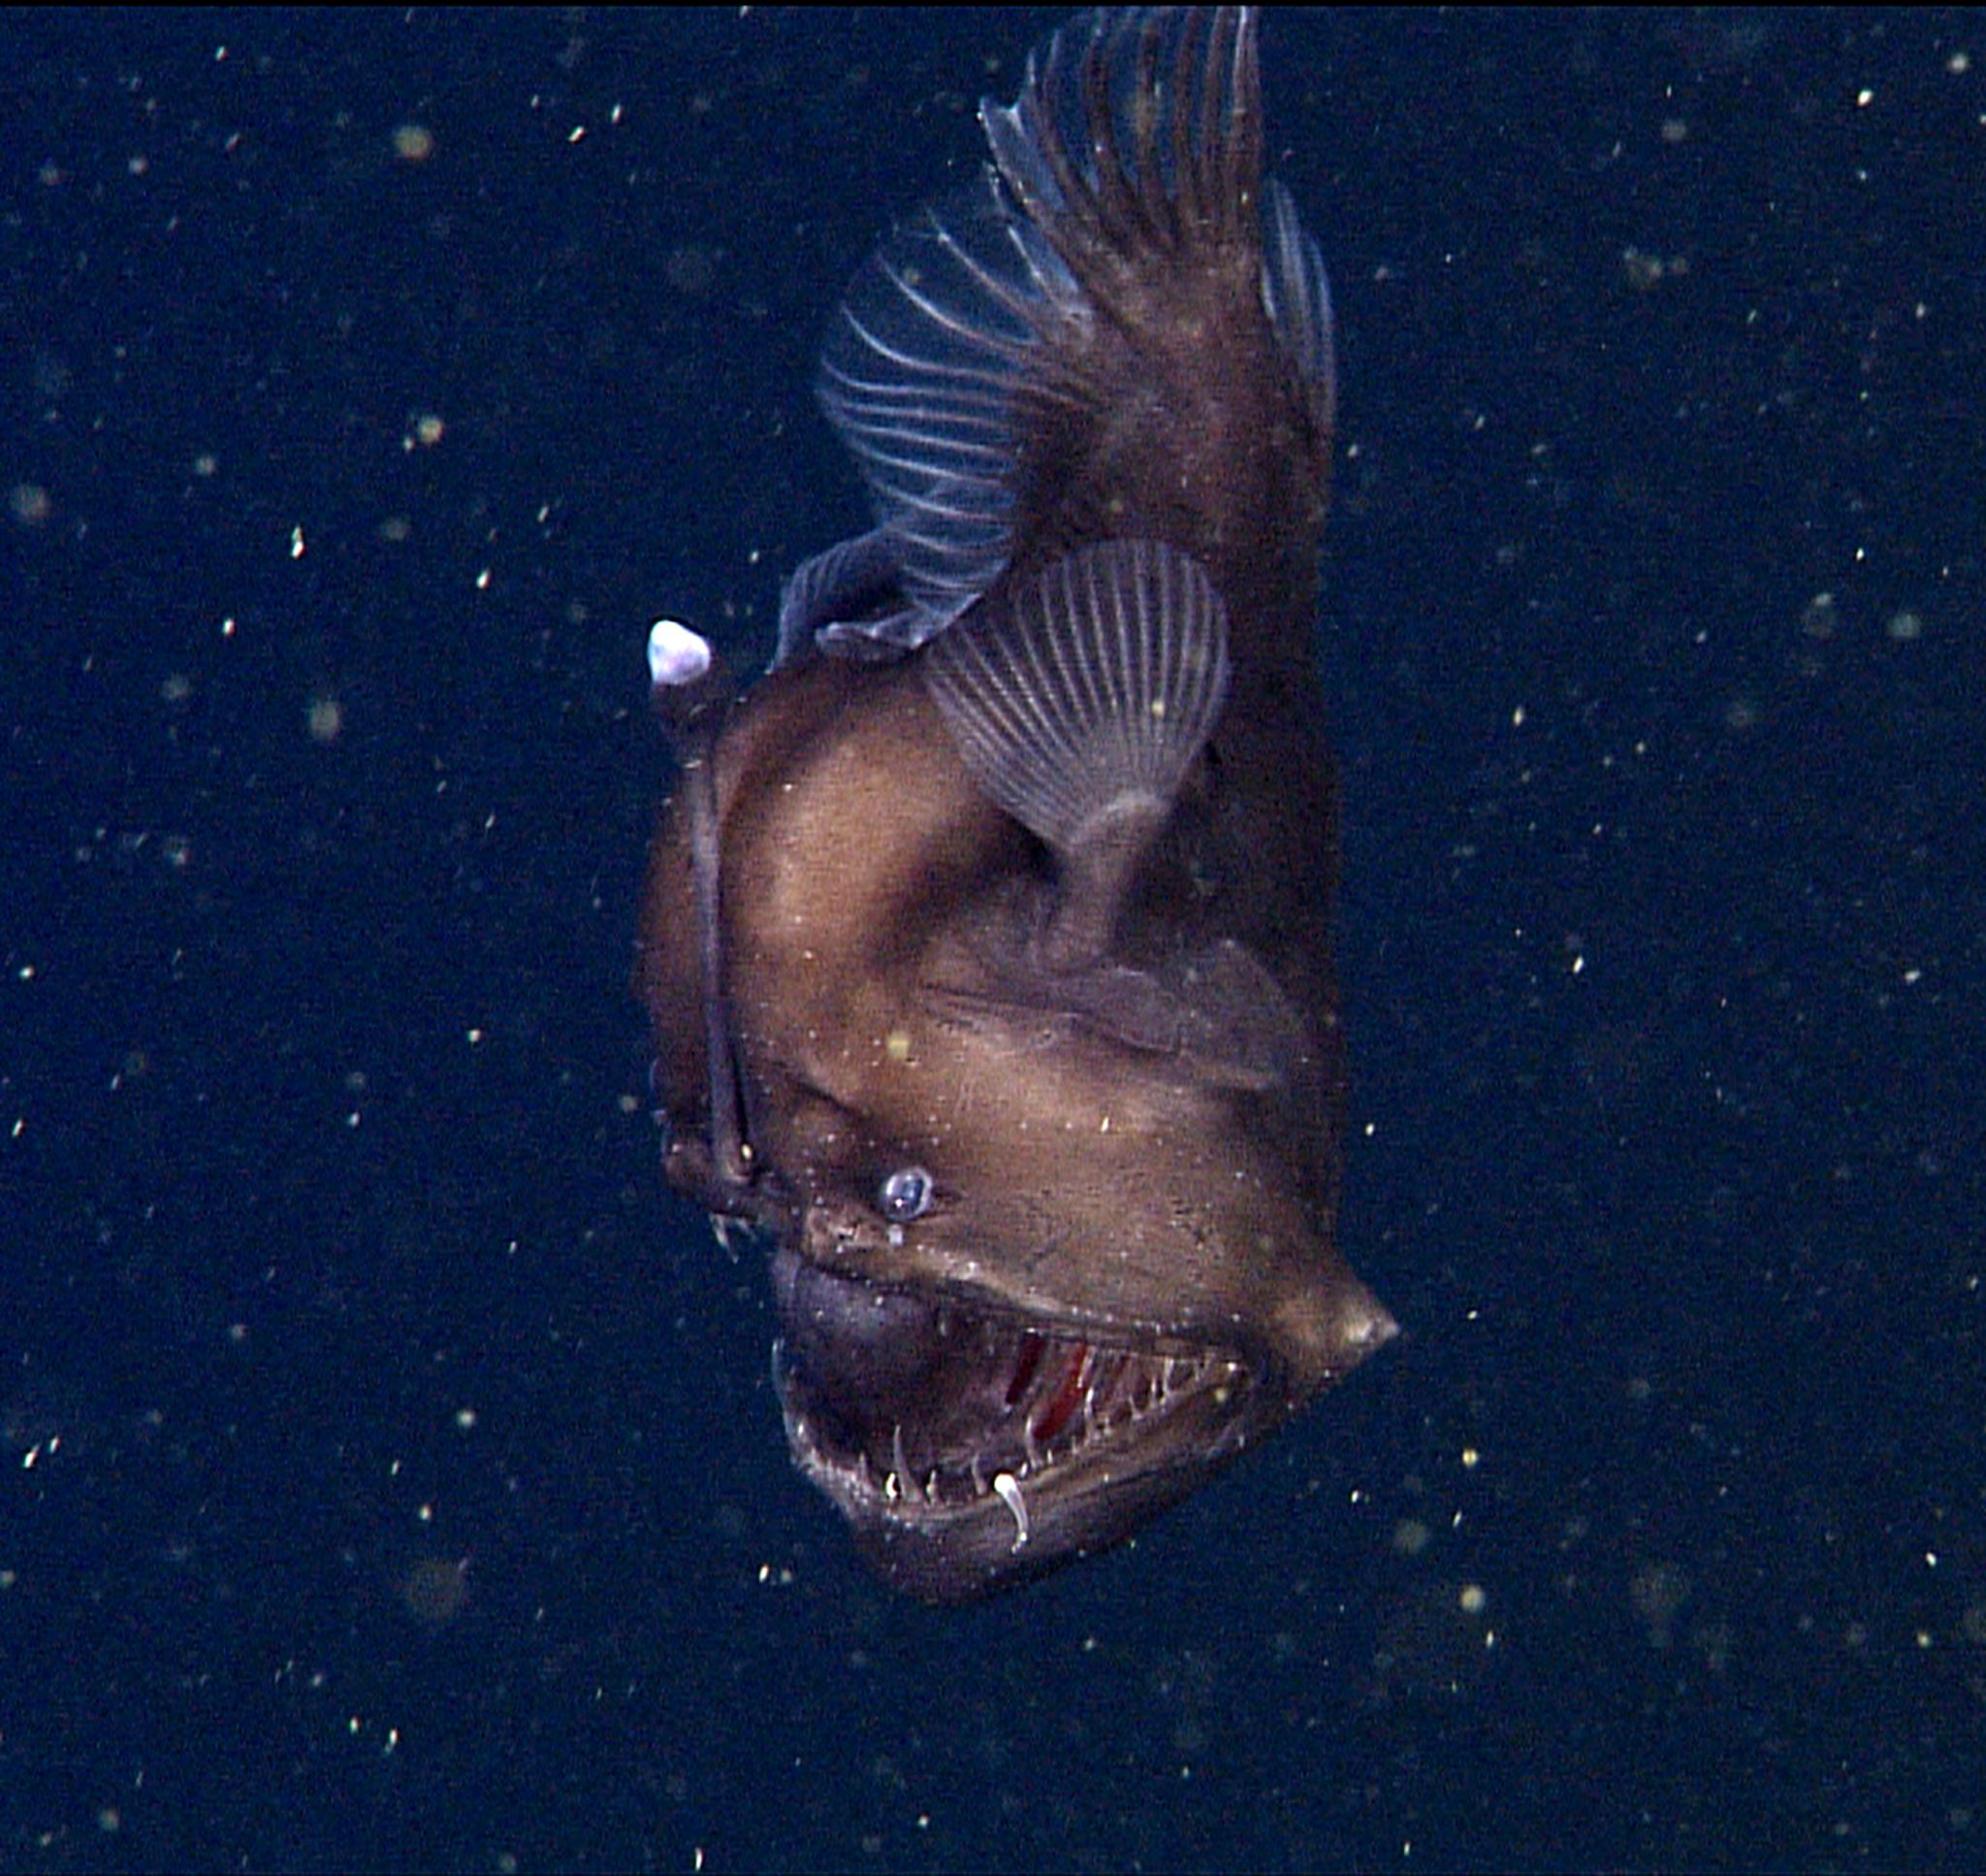 Rare fish in the deep sea